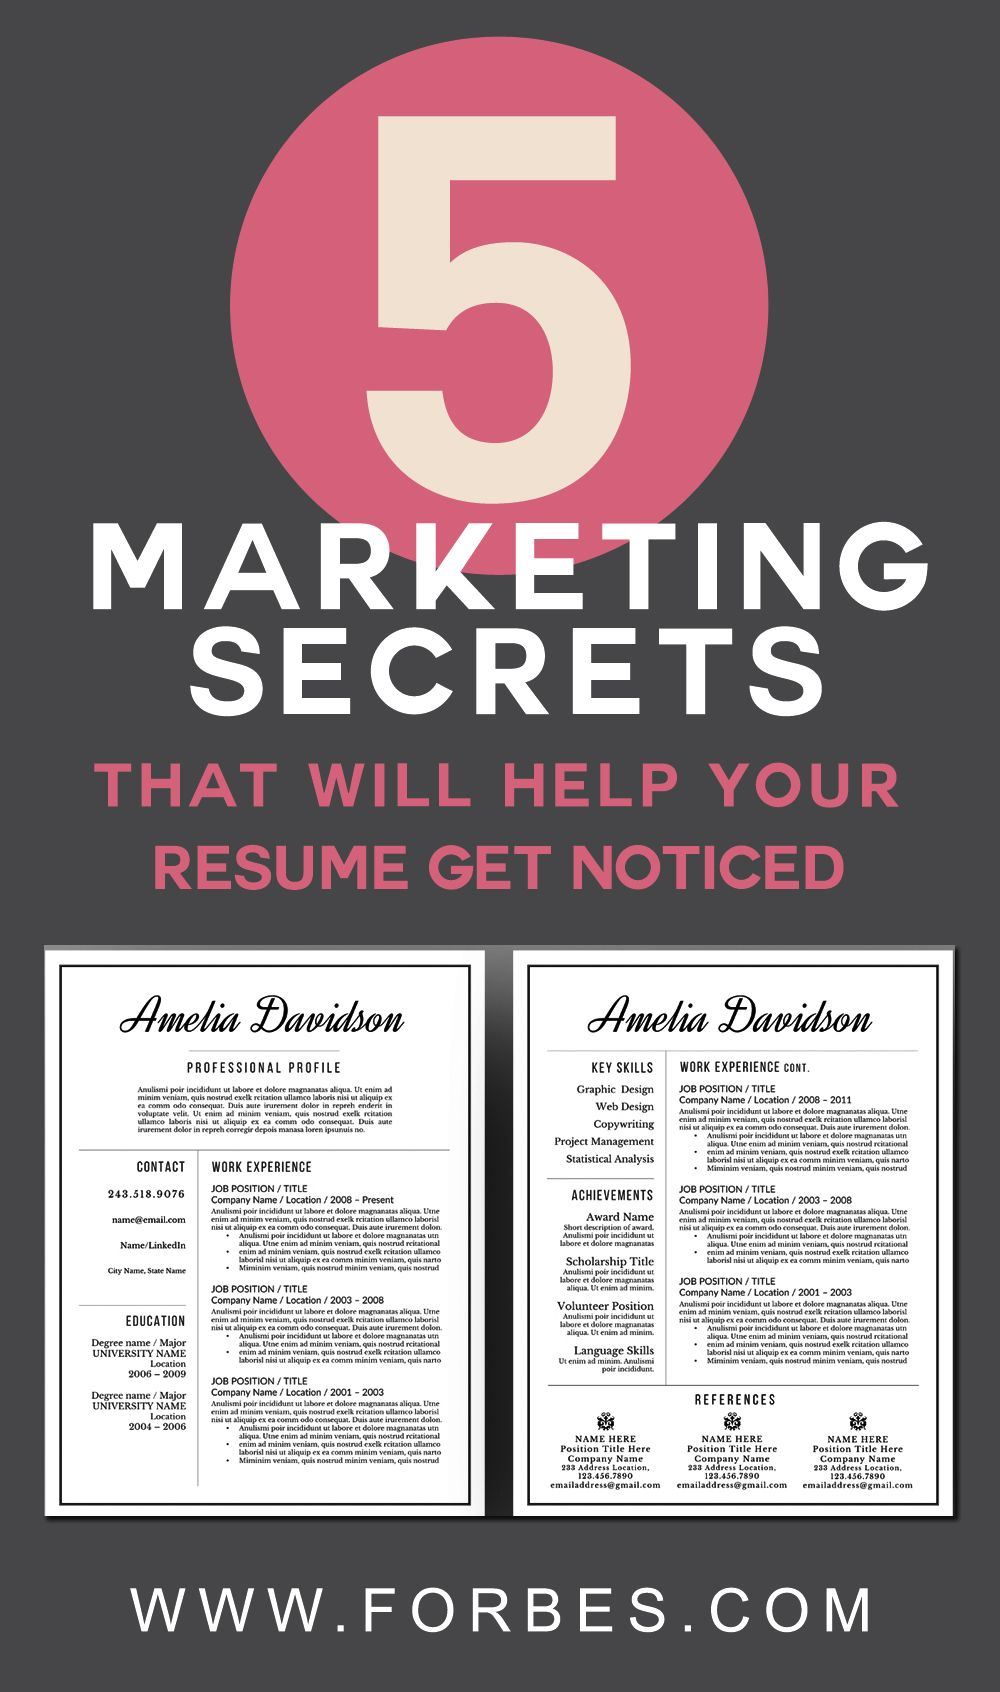 5 Marketing Secrets That Will Help Your Resume Get Noticed The